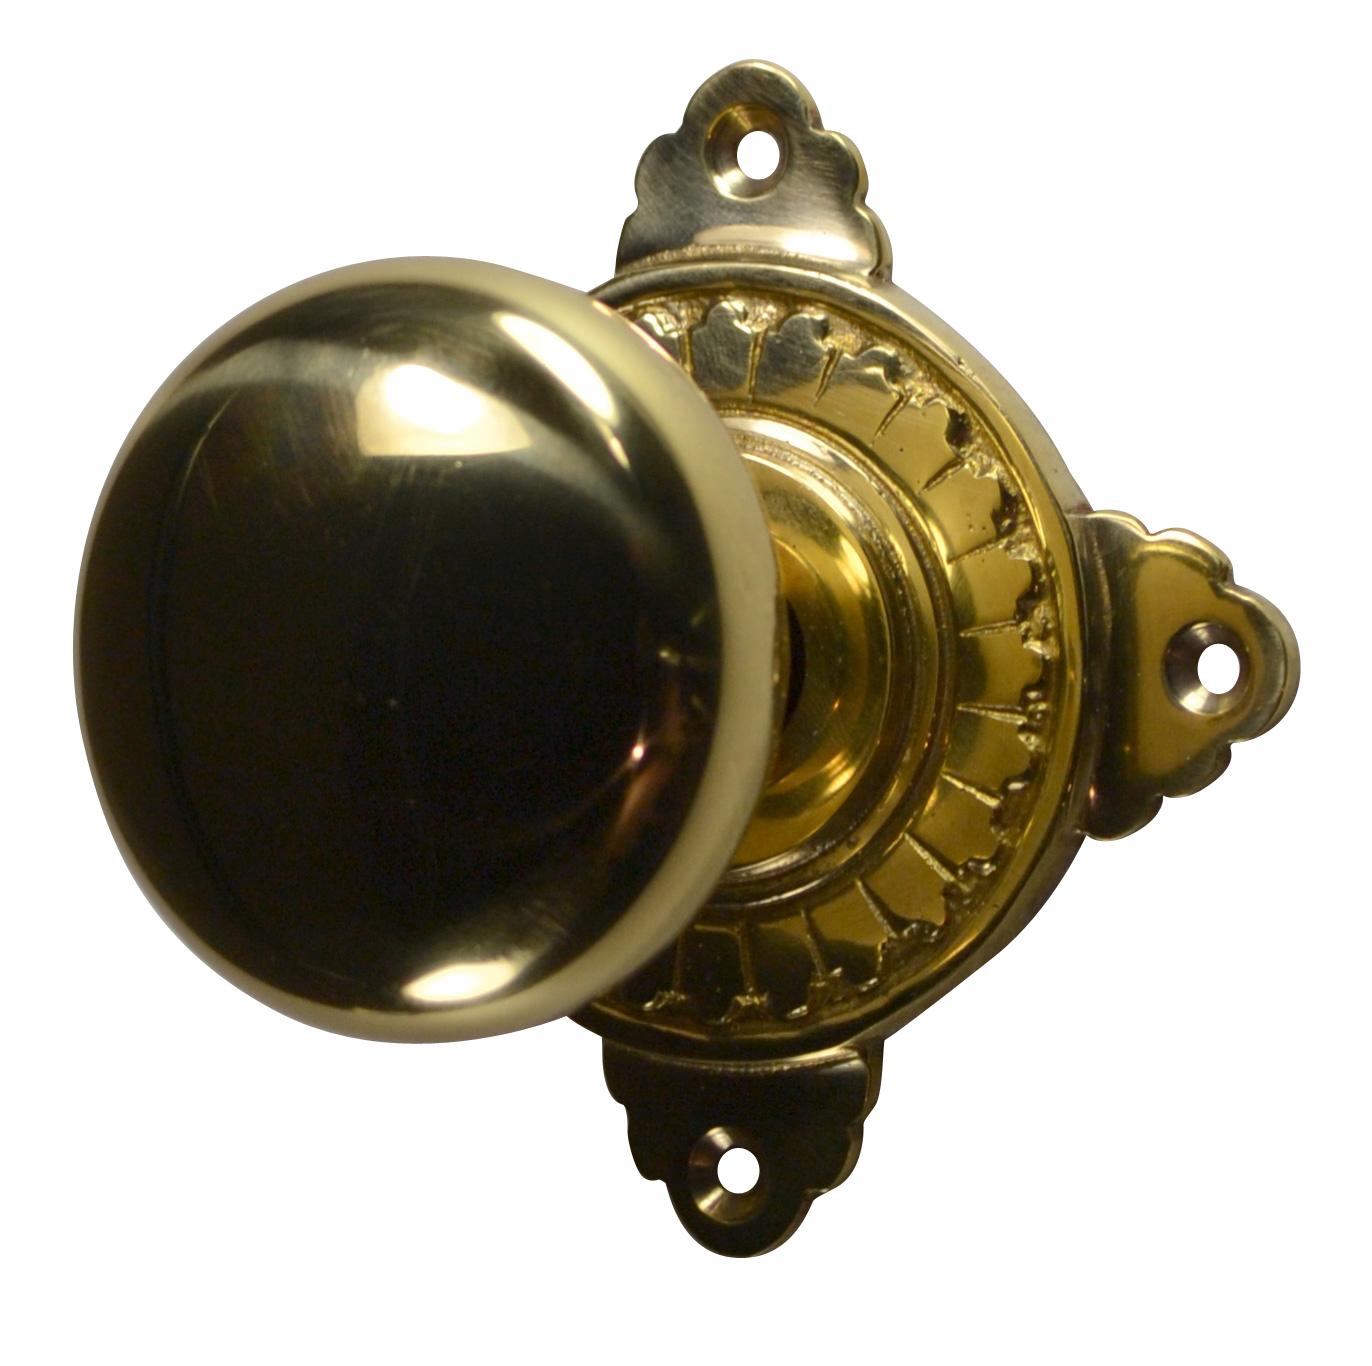 Round Brass Art Deco Door Knob (Polished Brass Finish)